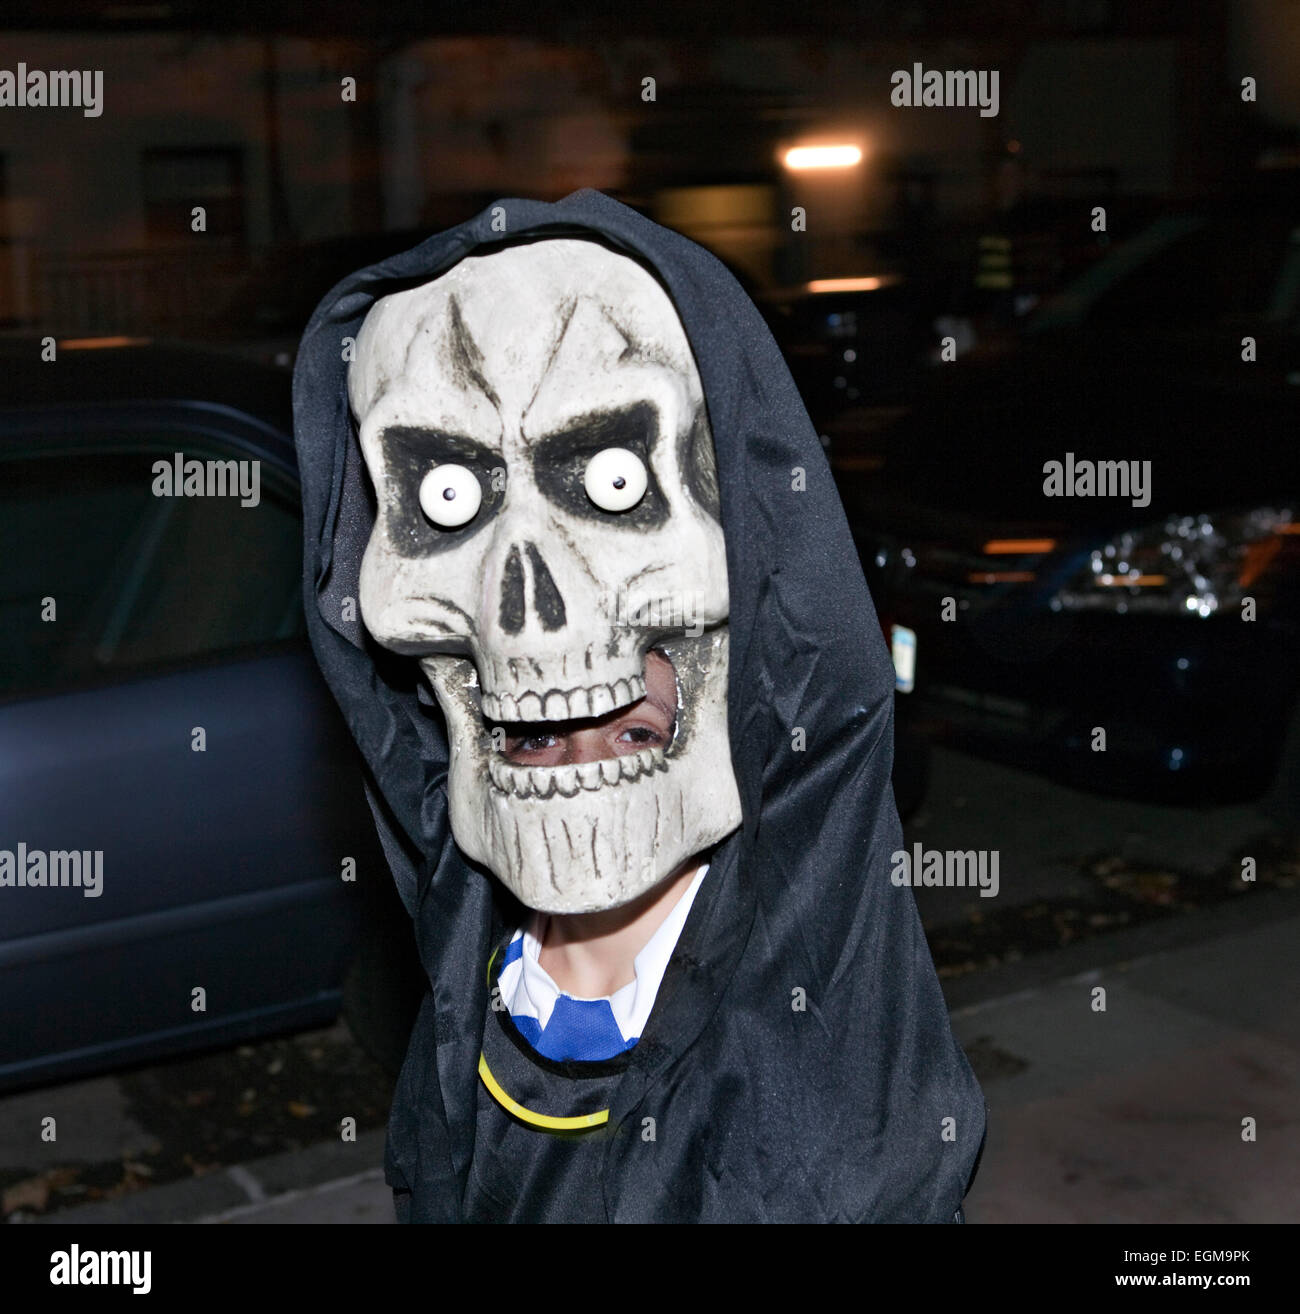 Giant Skull mask Trick or Treating Halloween Night Stock Photo ...